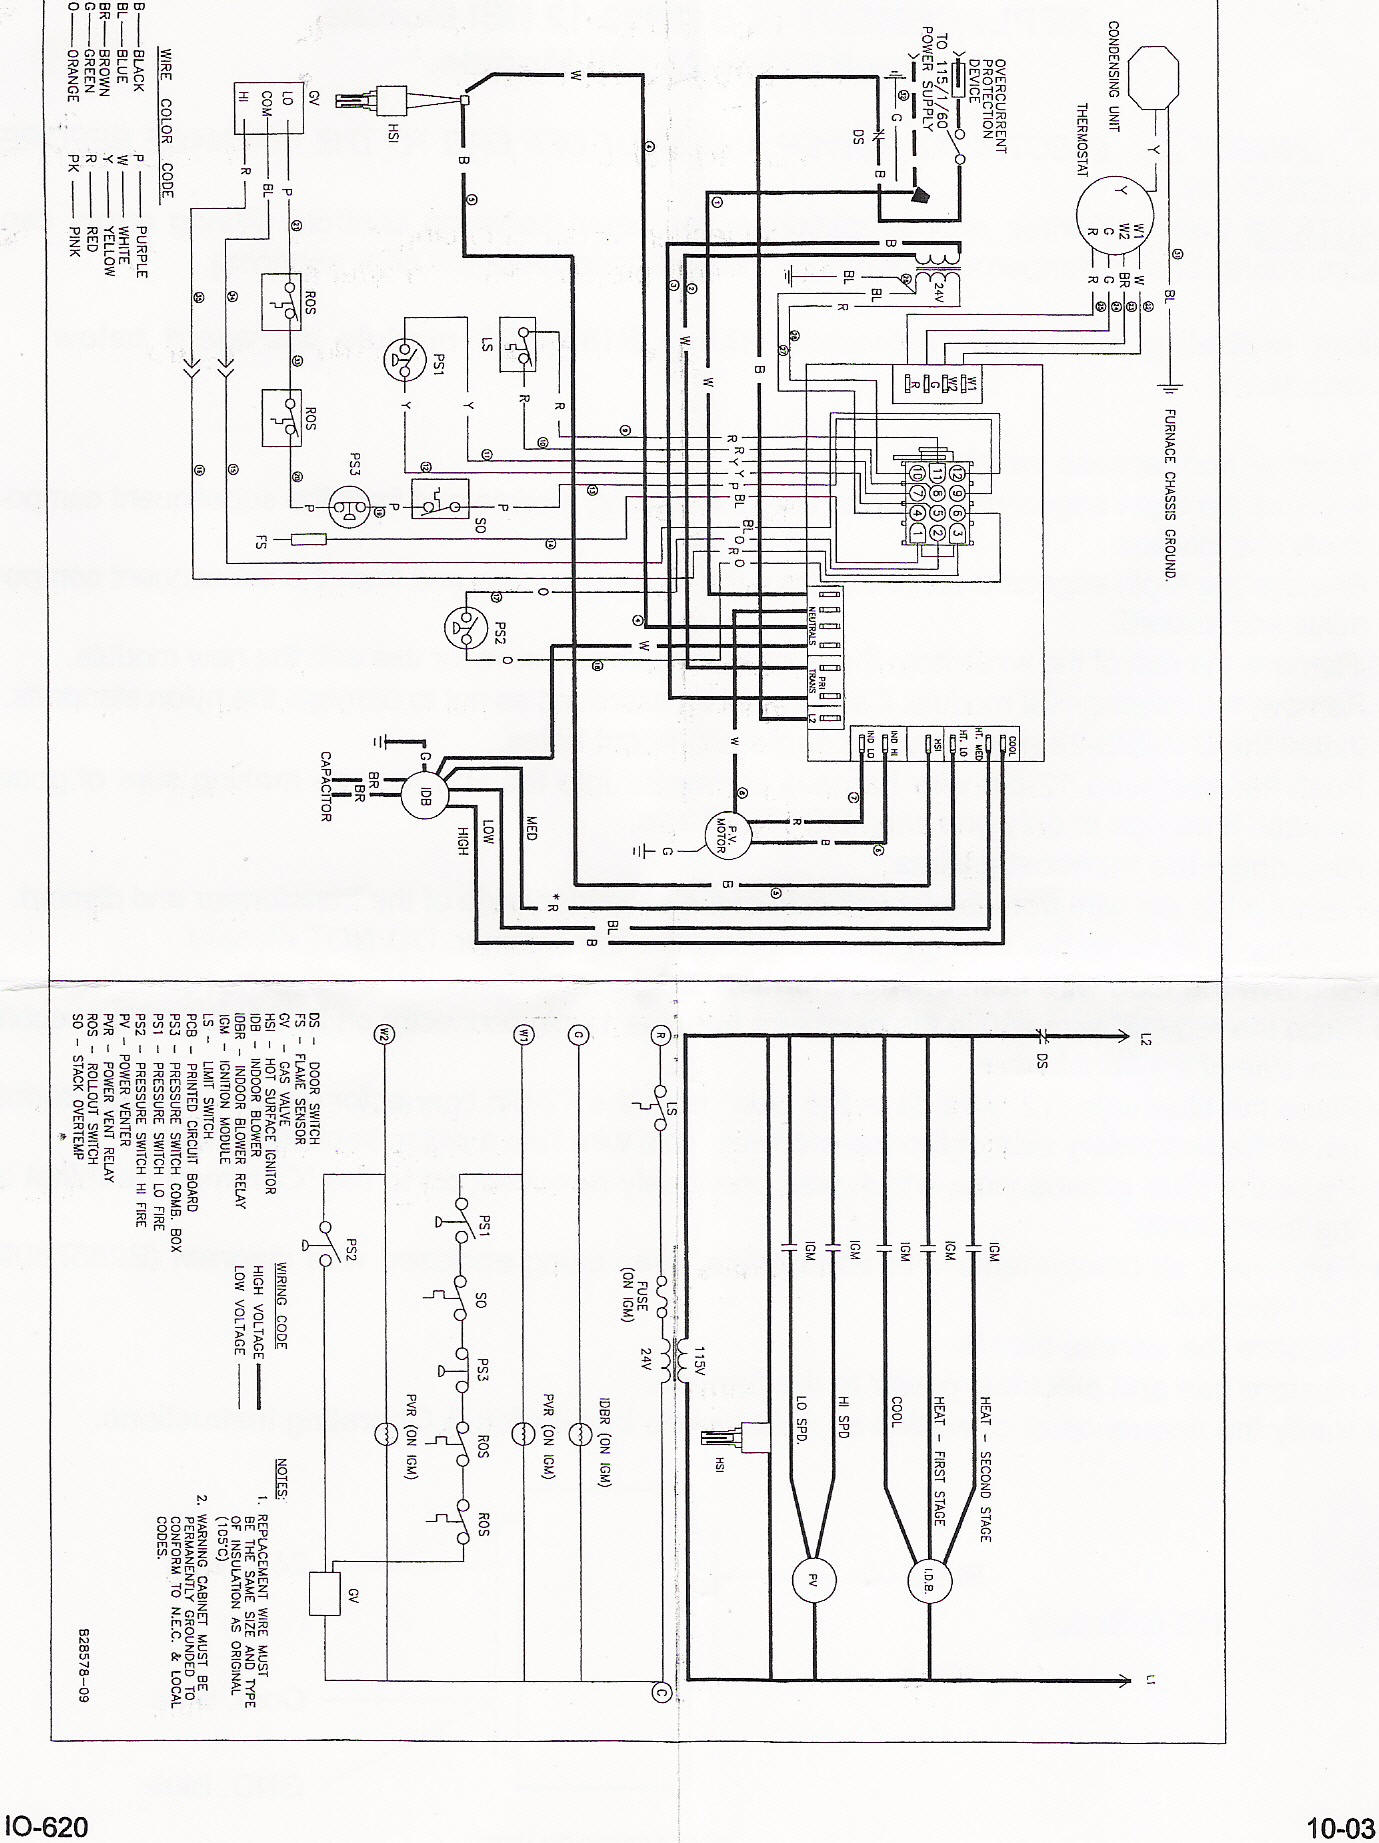 goodma2 instr york control board wiring diagram electric motor control circuit white-rodgers fan control center wiring diagram at pacquiaovsvargaslive.co